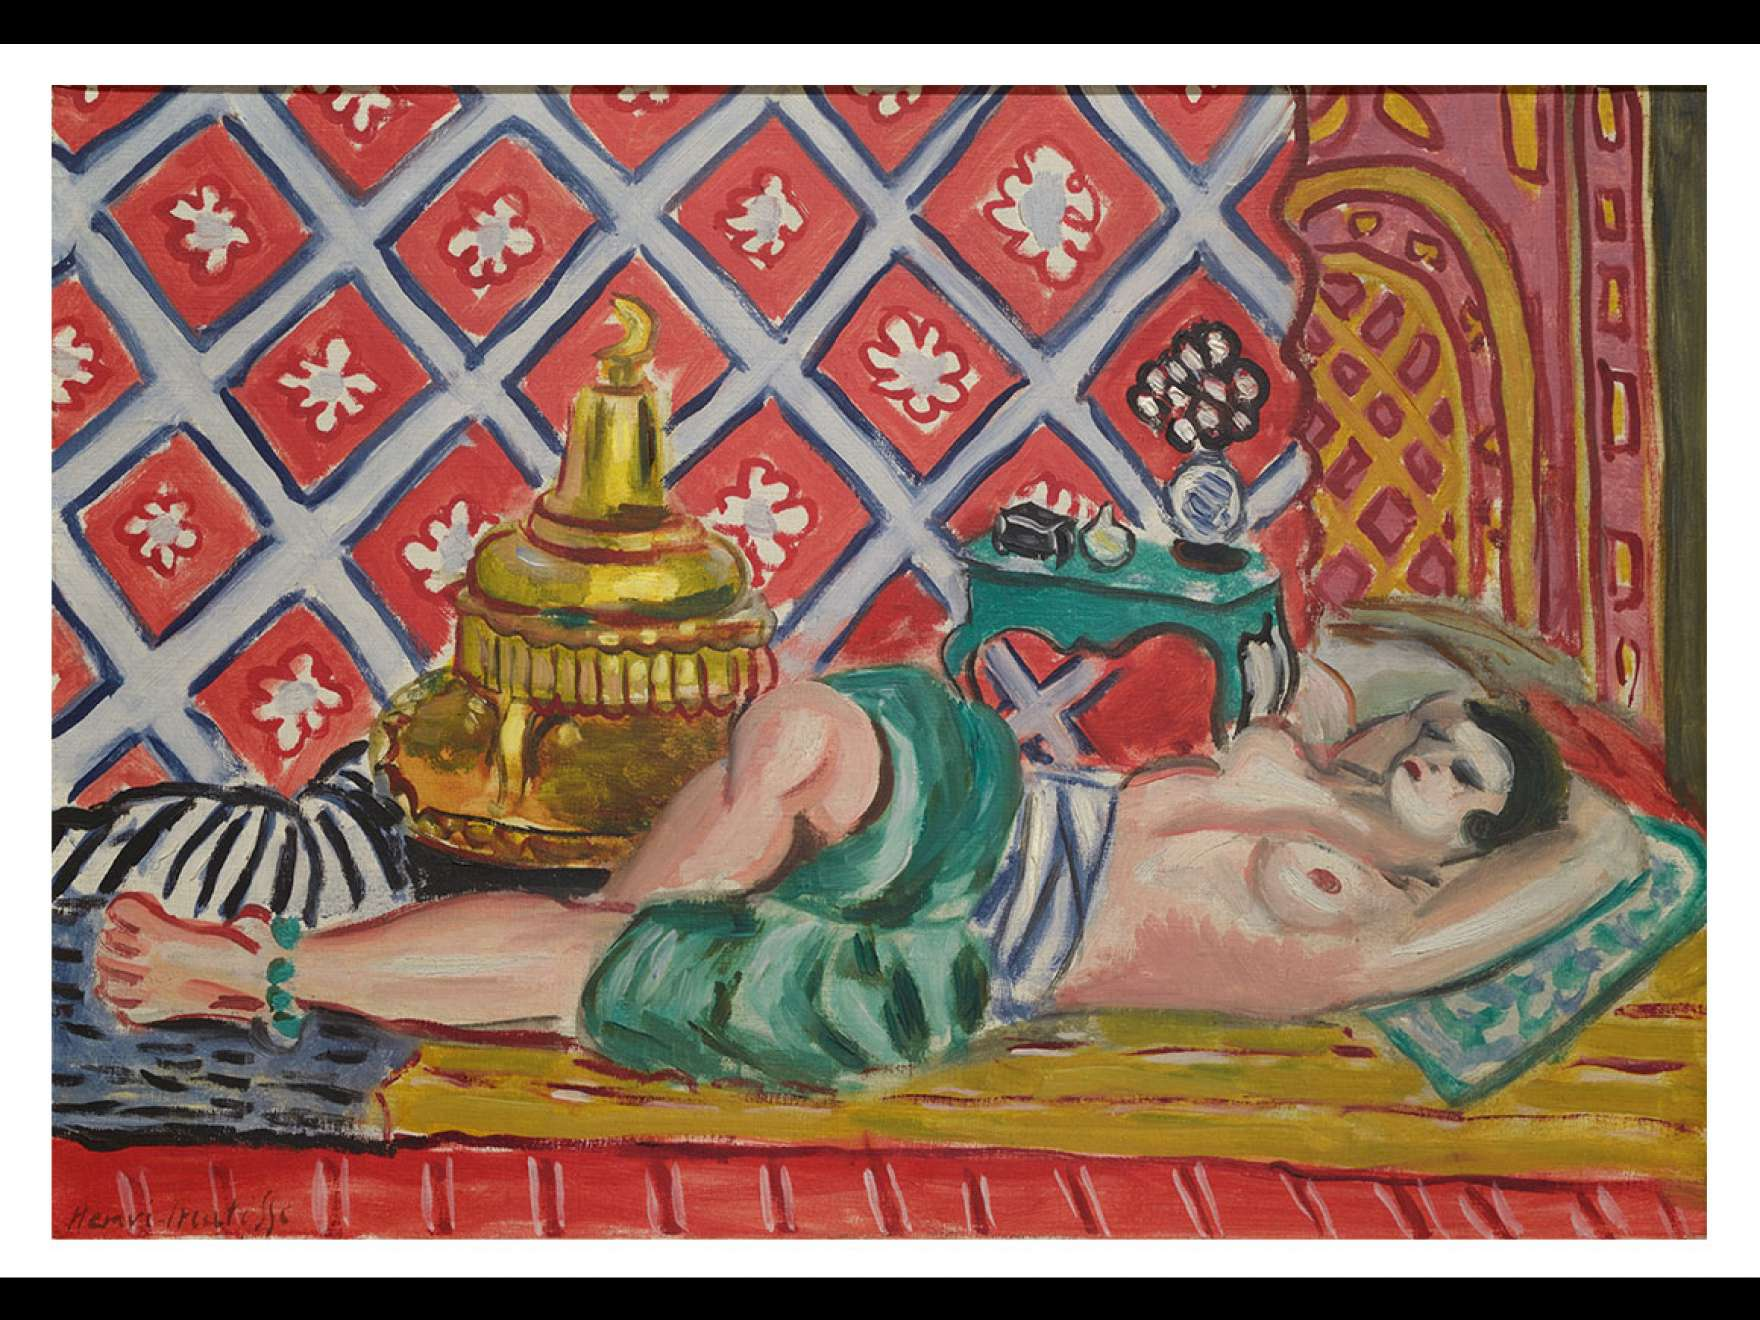 Henri Matisse's painting, Reclining Odalisque